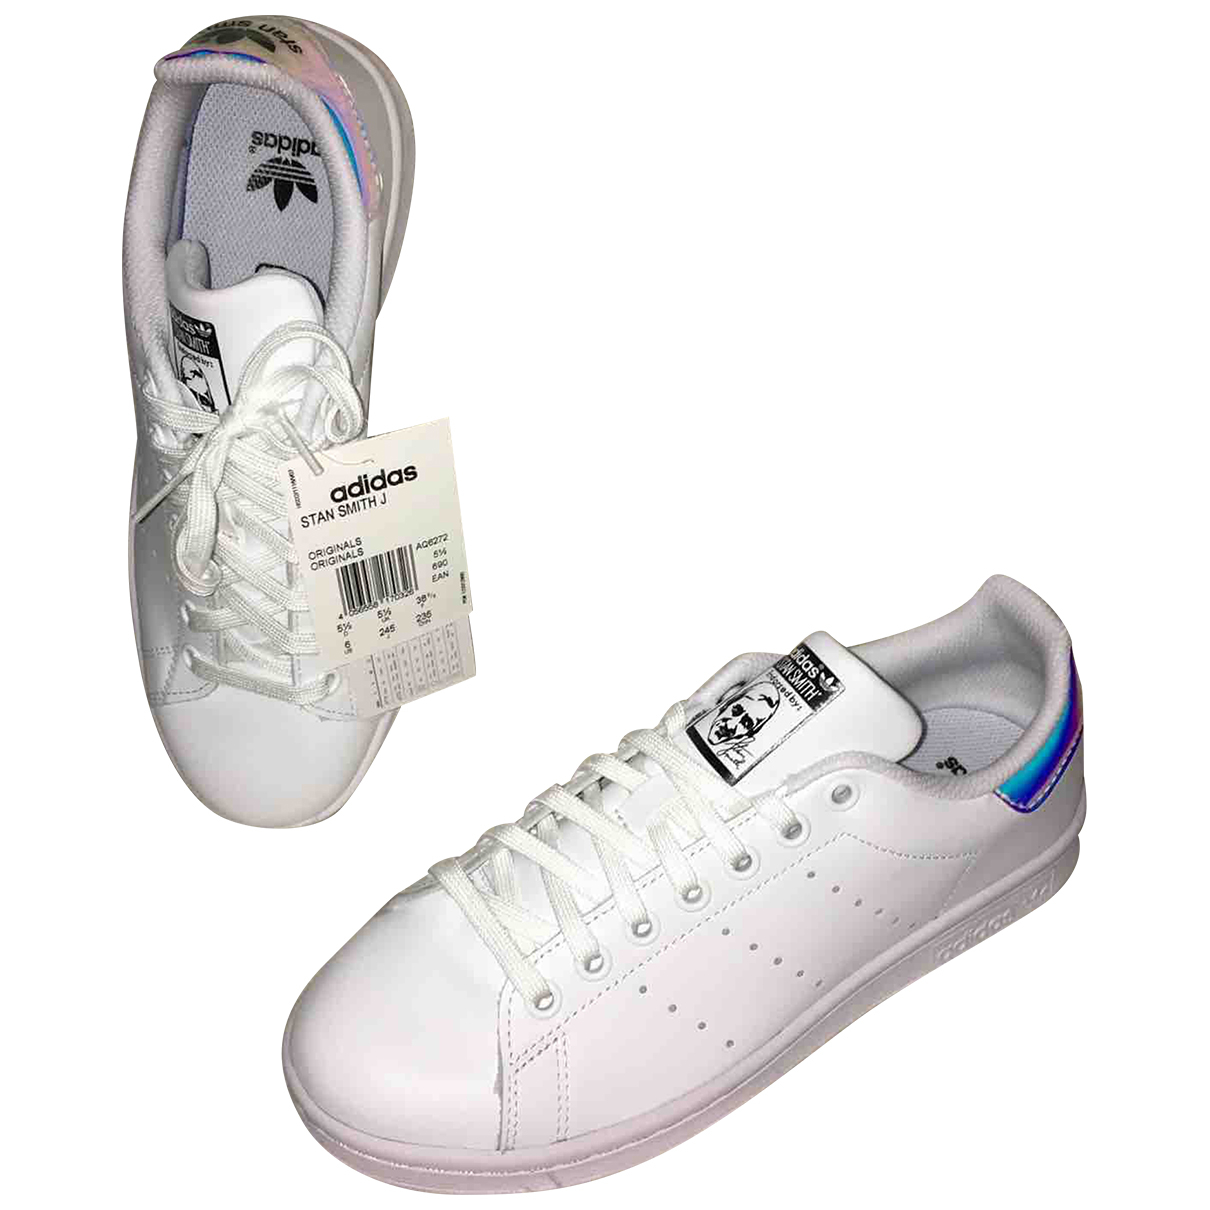 Adidas Stan Smith White Leather Trainers for Women 38.5 EU